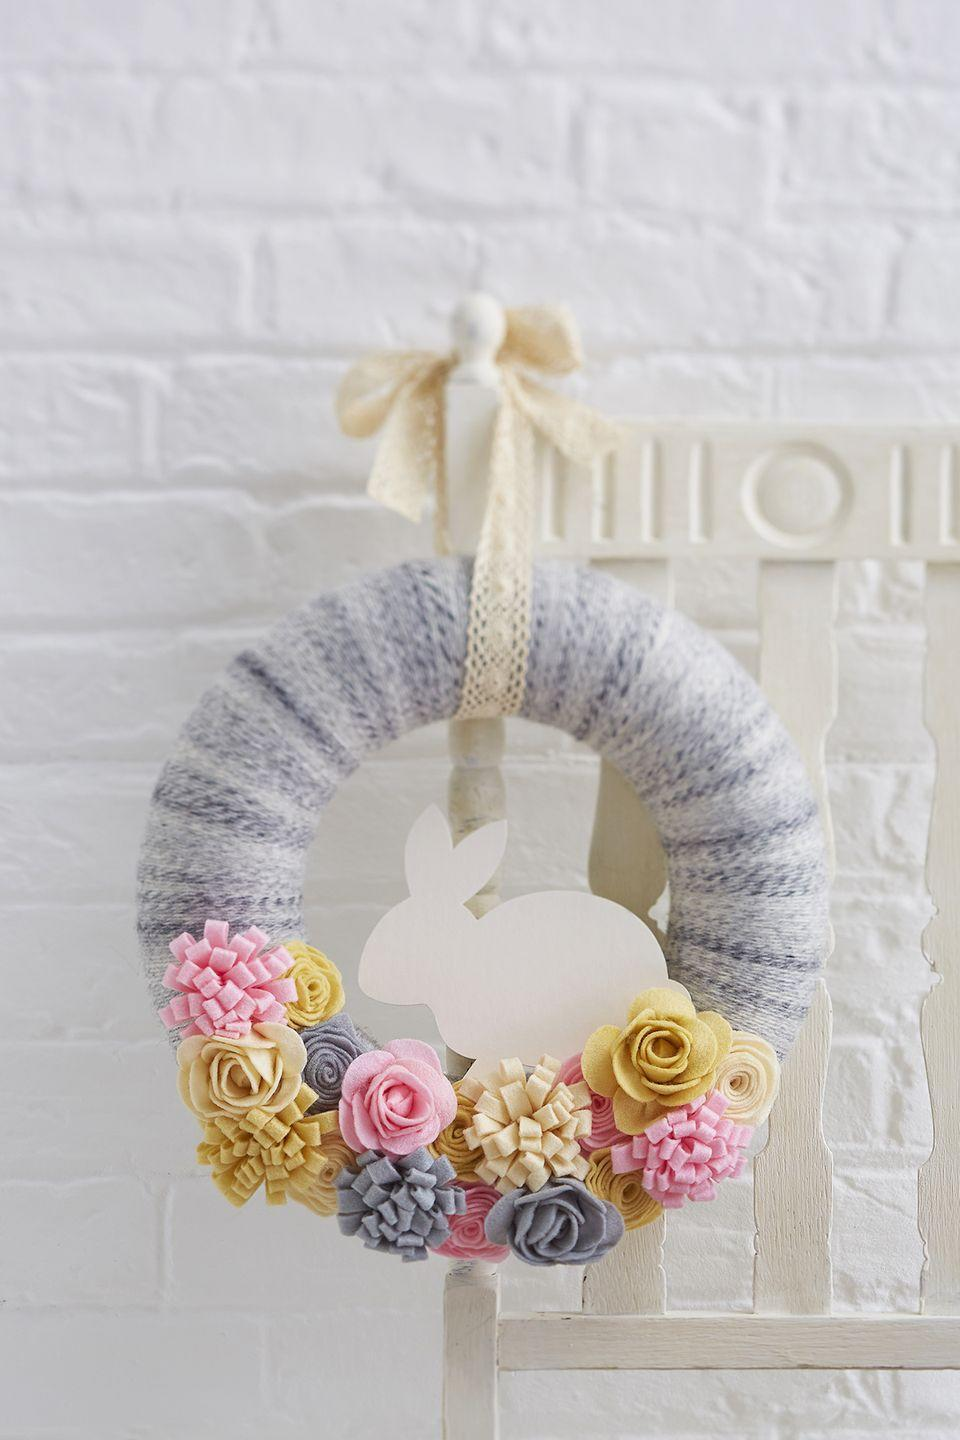 """<p>Use felt to make the soft, colorful flowers on this wreath and hang it with a piece of vintage lace.</p><p><strong>Get the tutorial at <a href=""""http://bit.ly/2lnRWvl"""" rel=""""nofollow noopener"""" target=""""_blank"""" data-ylk=""""slk:Hobbycraft"""" class=""""link rapid-noclick-resp"""">Hobbycraft</a>. </strong></p><p><strong><a class=""""link rapid-noclick-resp"""" href=""""https://www.amazon.com/Misscrafts-Squares-Patchwork-Scrapbooking-Quilting/dp/B01MS22AJV?tag=syn-yahoo-20&ascsubtag=%5Bartid%7C10050.g.4088%5Bsrc%7Cyahoo-us"""" rel=""""nofollow noopener"""" target=""""_blank"""" data-ylk=""""slk:SHOP FELT AND FABRIC"""">SHOP FELT AND FABRIC</a></strong> </p>"""